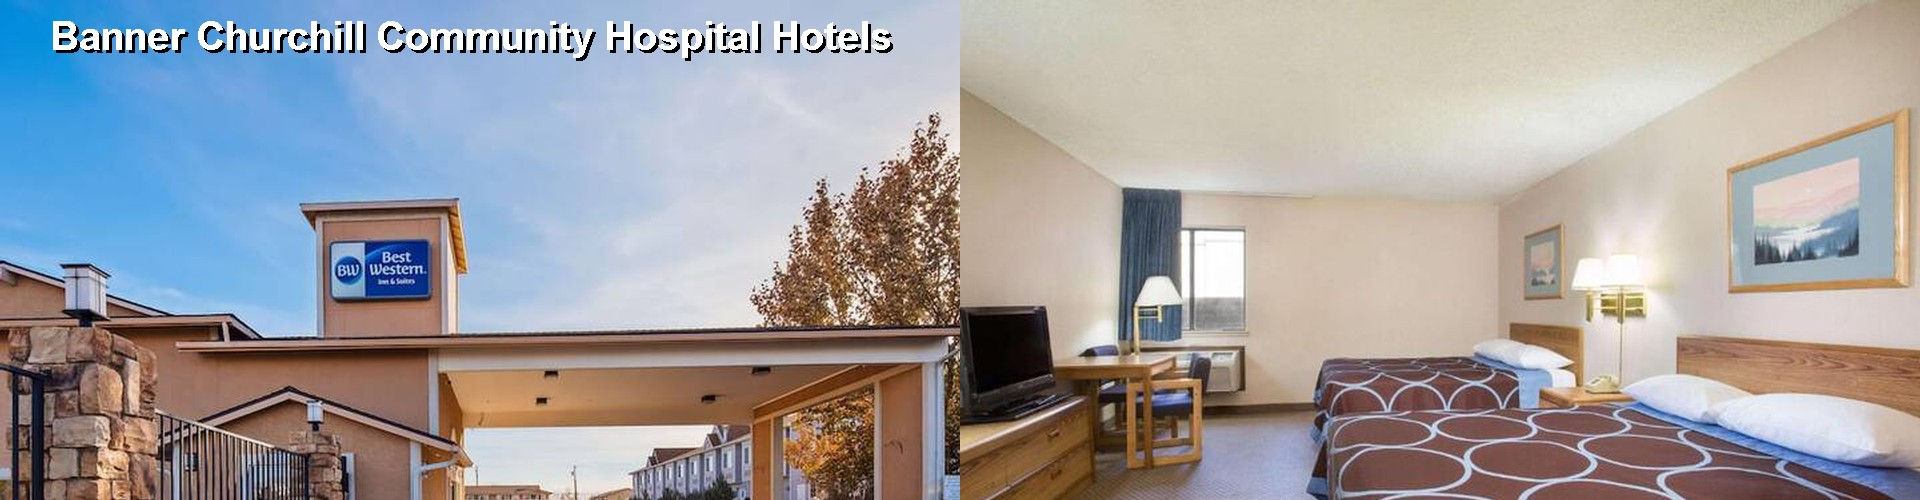 5 Best Hotels near Banner Churchill Community Hospital